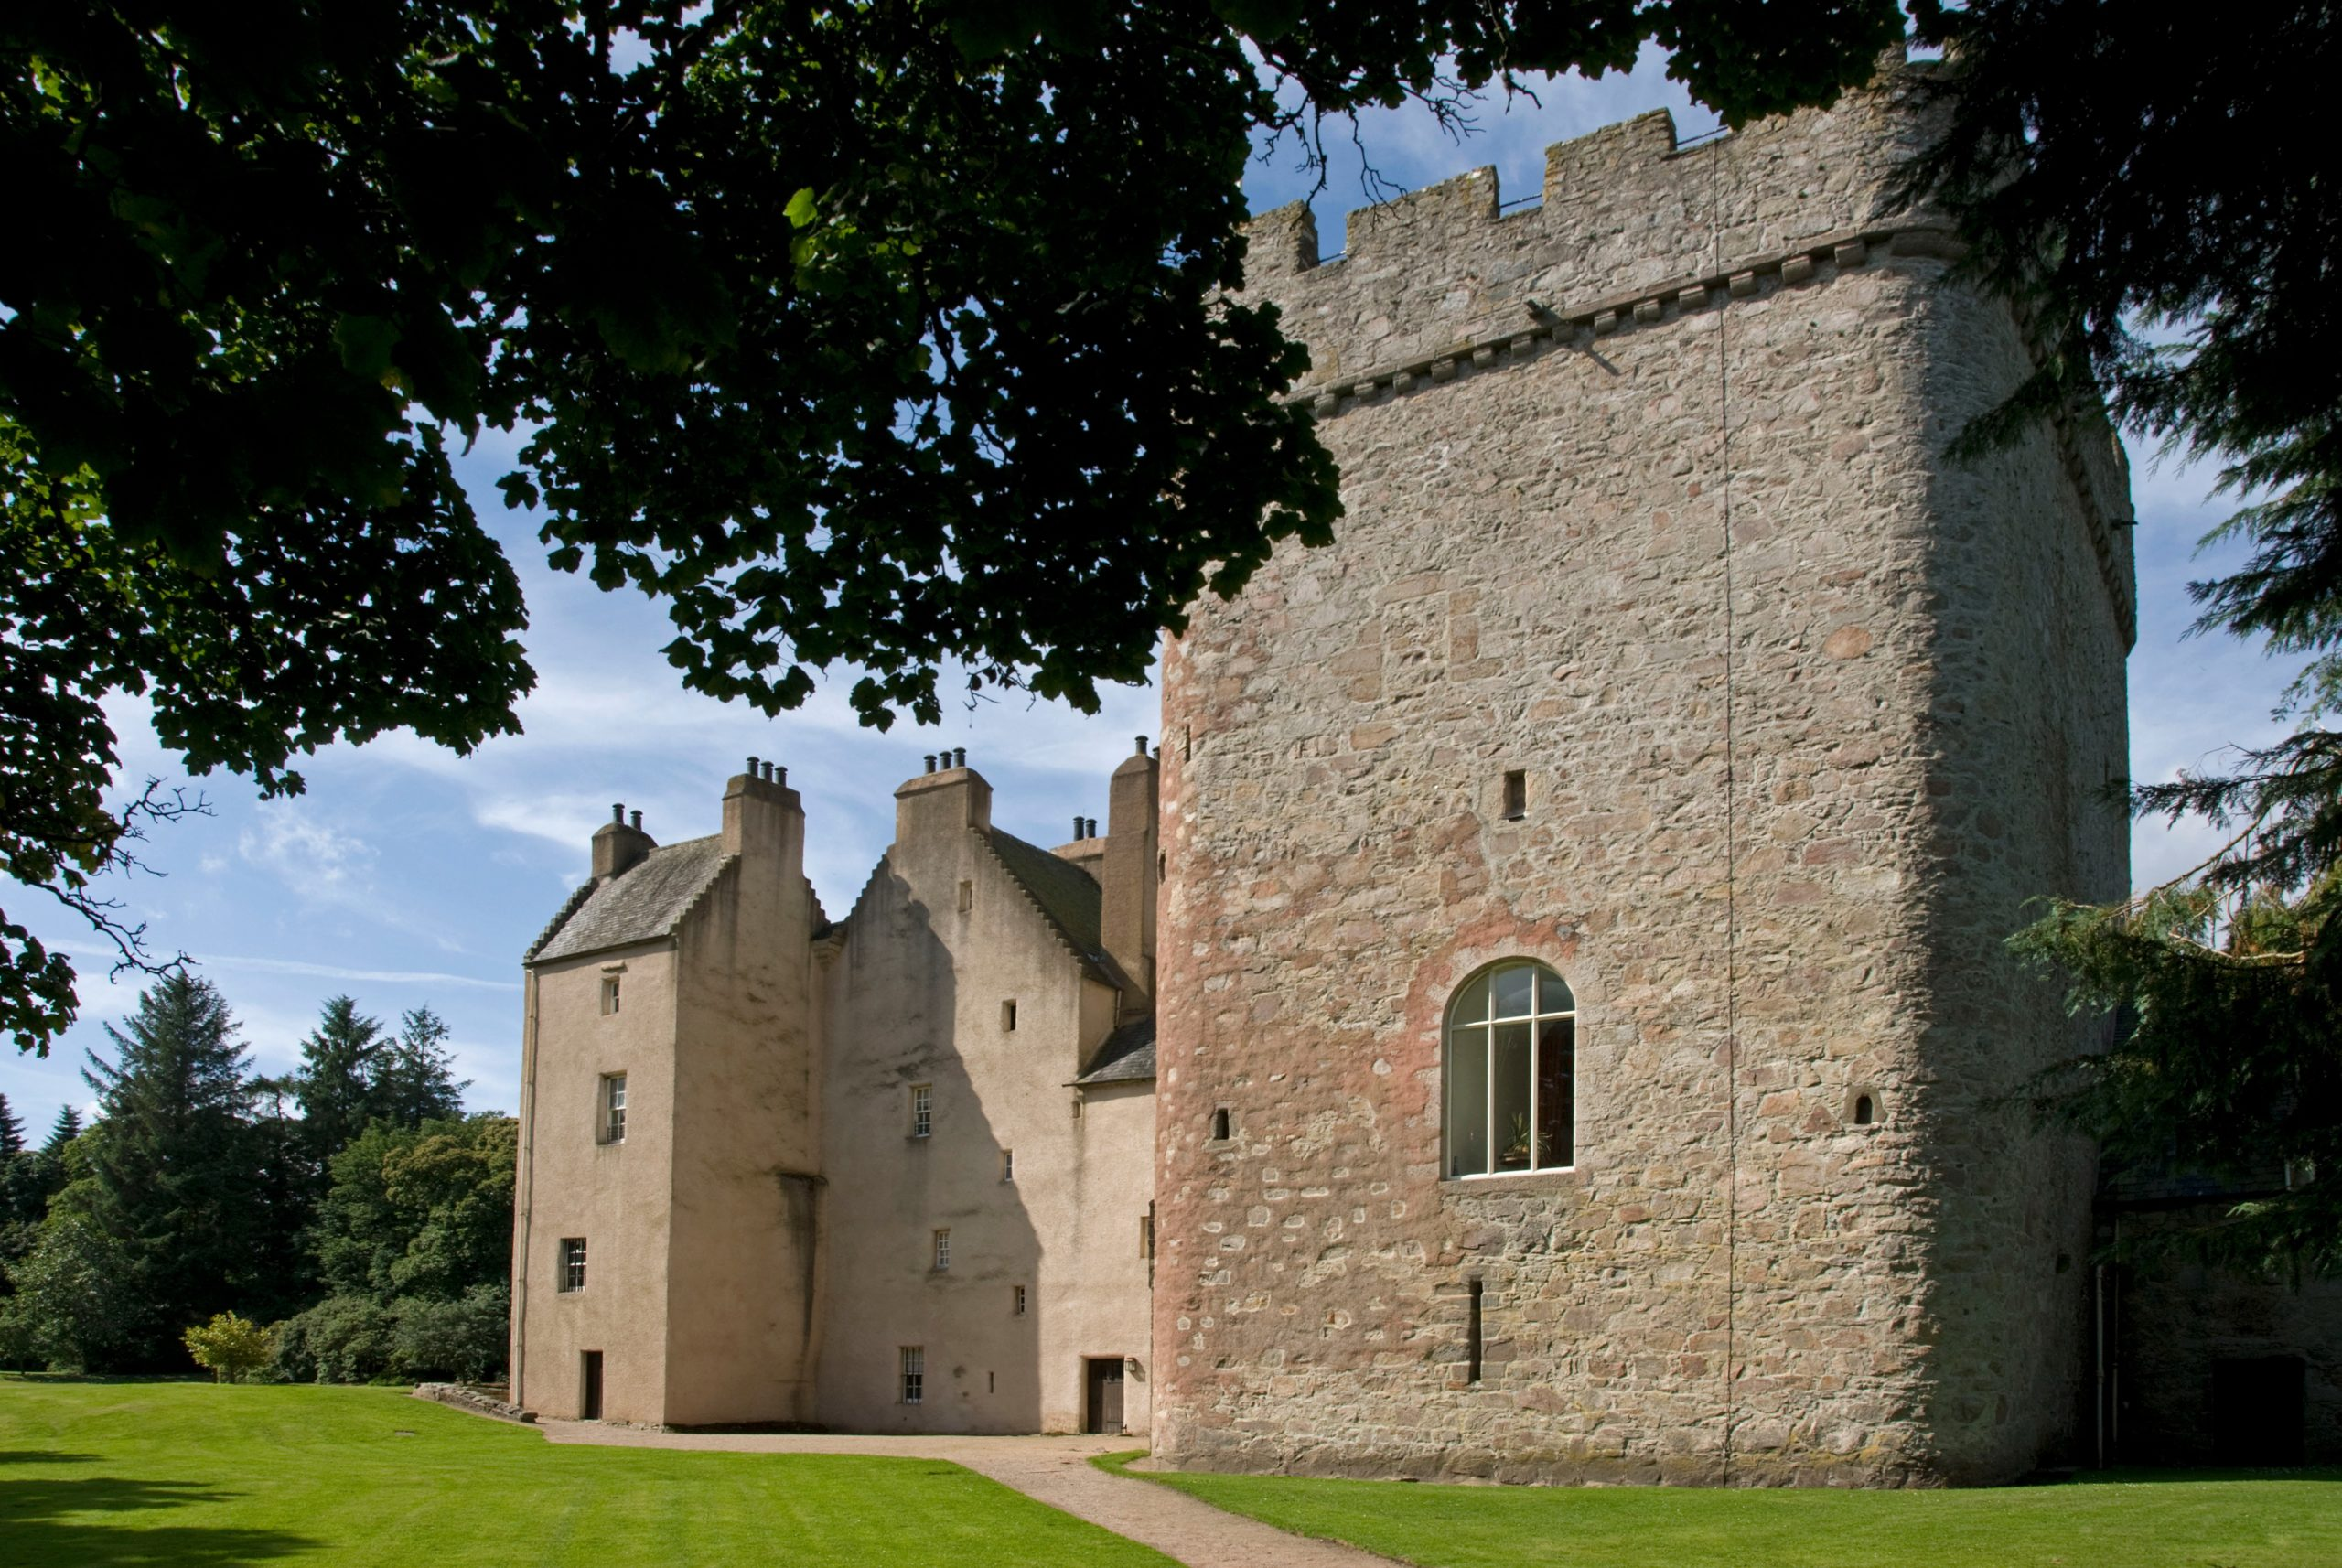 Drum Castle will reopen in the coming weeks, the National Trust for Scotland has confirmed